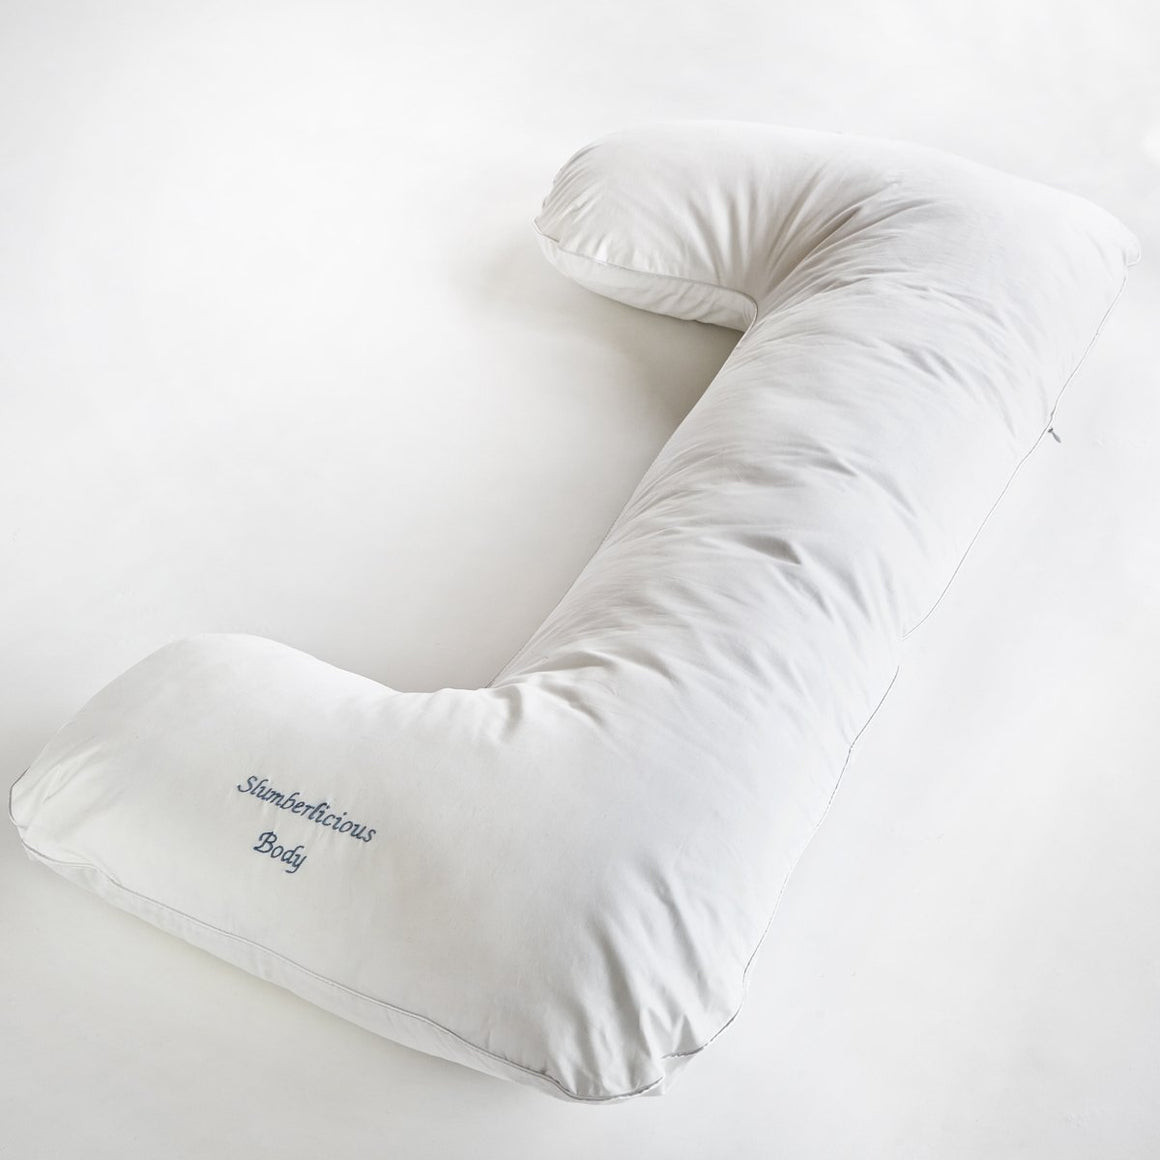 Slumberlicious Body Pillow